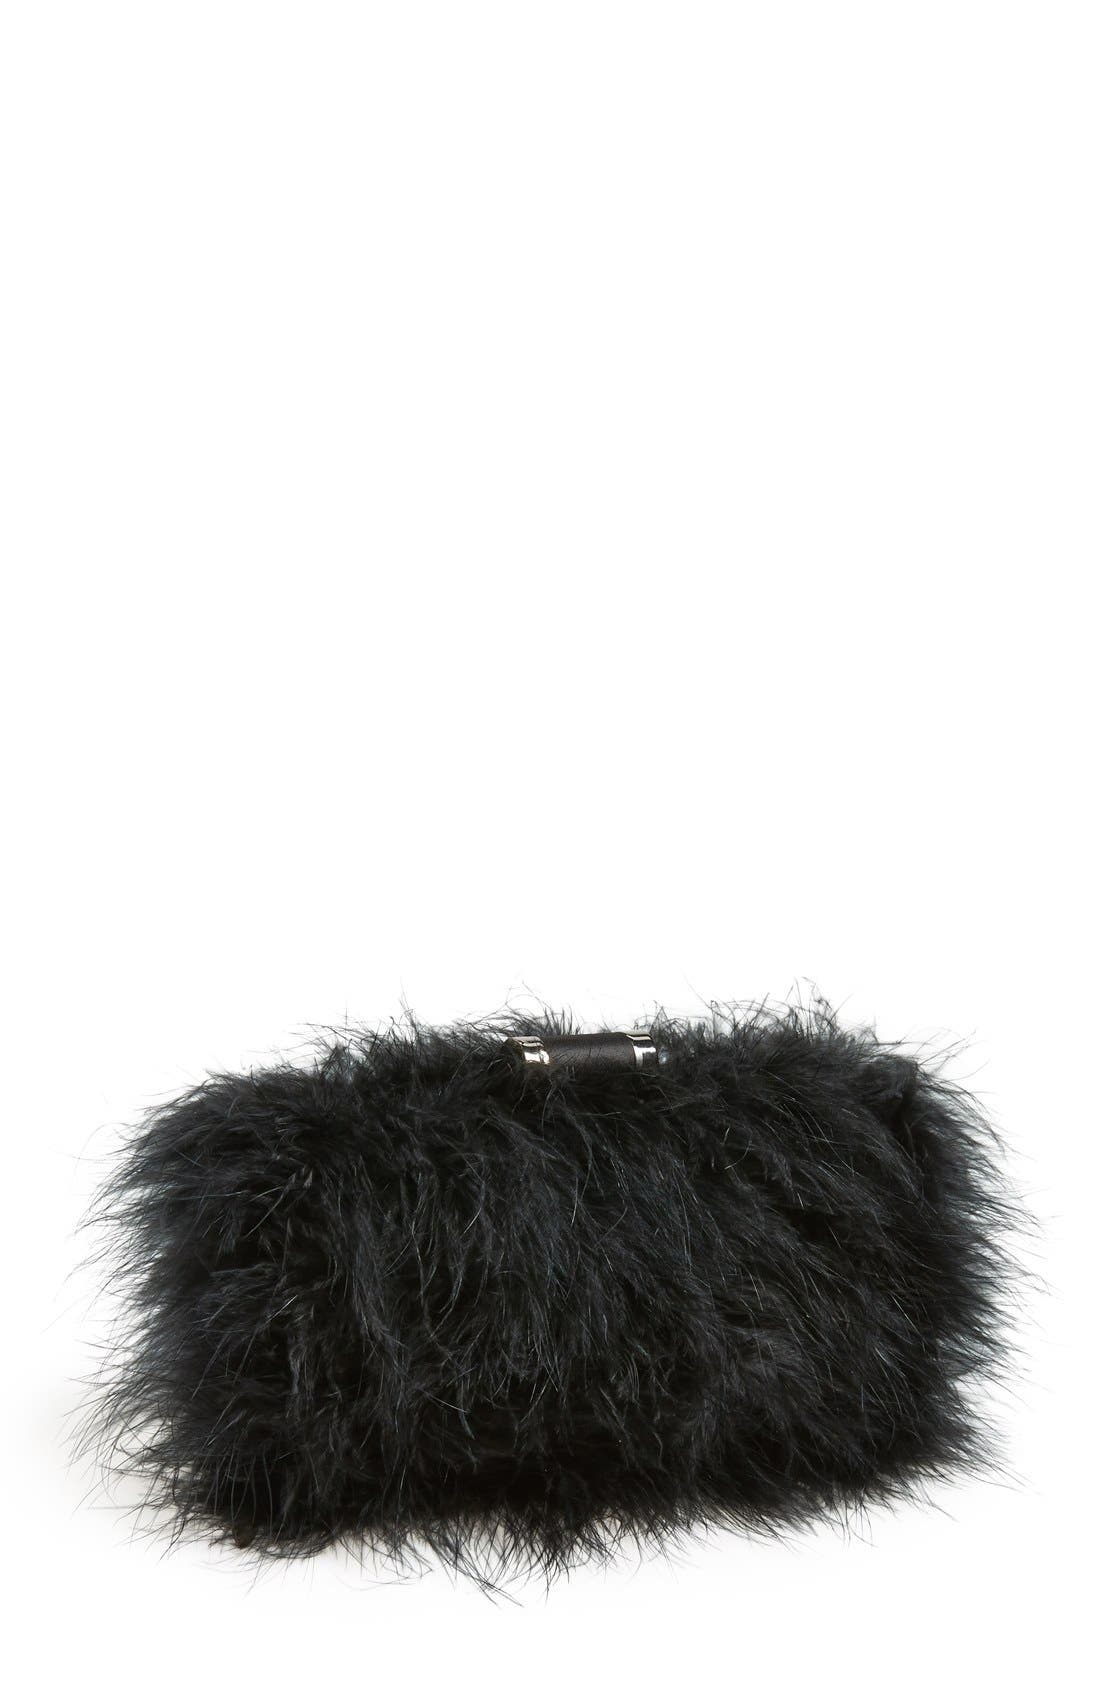 Main Image - Sondra Roberts 'Furry Monster' Feather Clutch